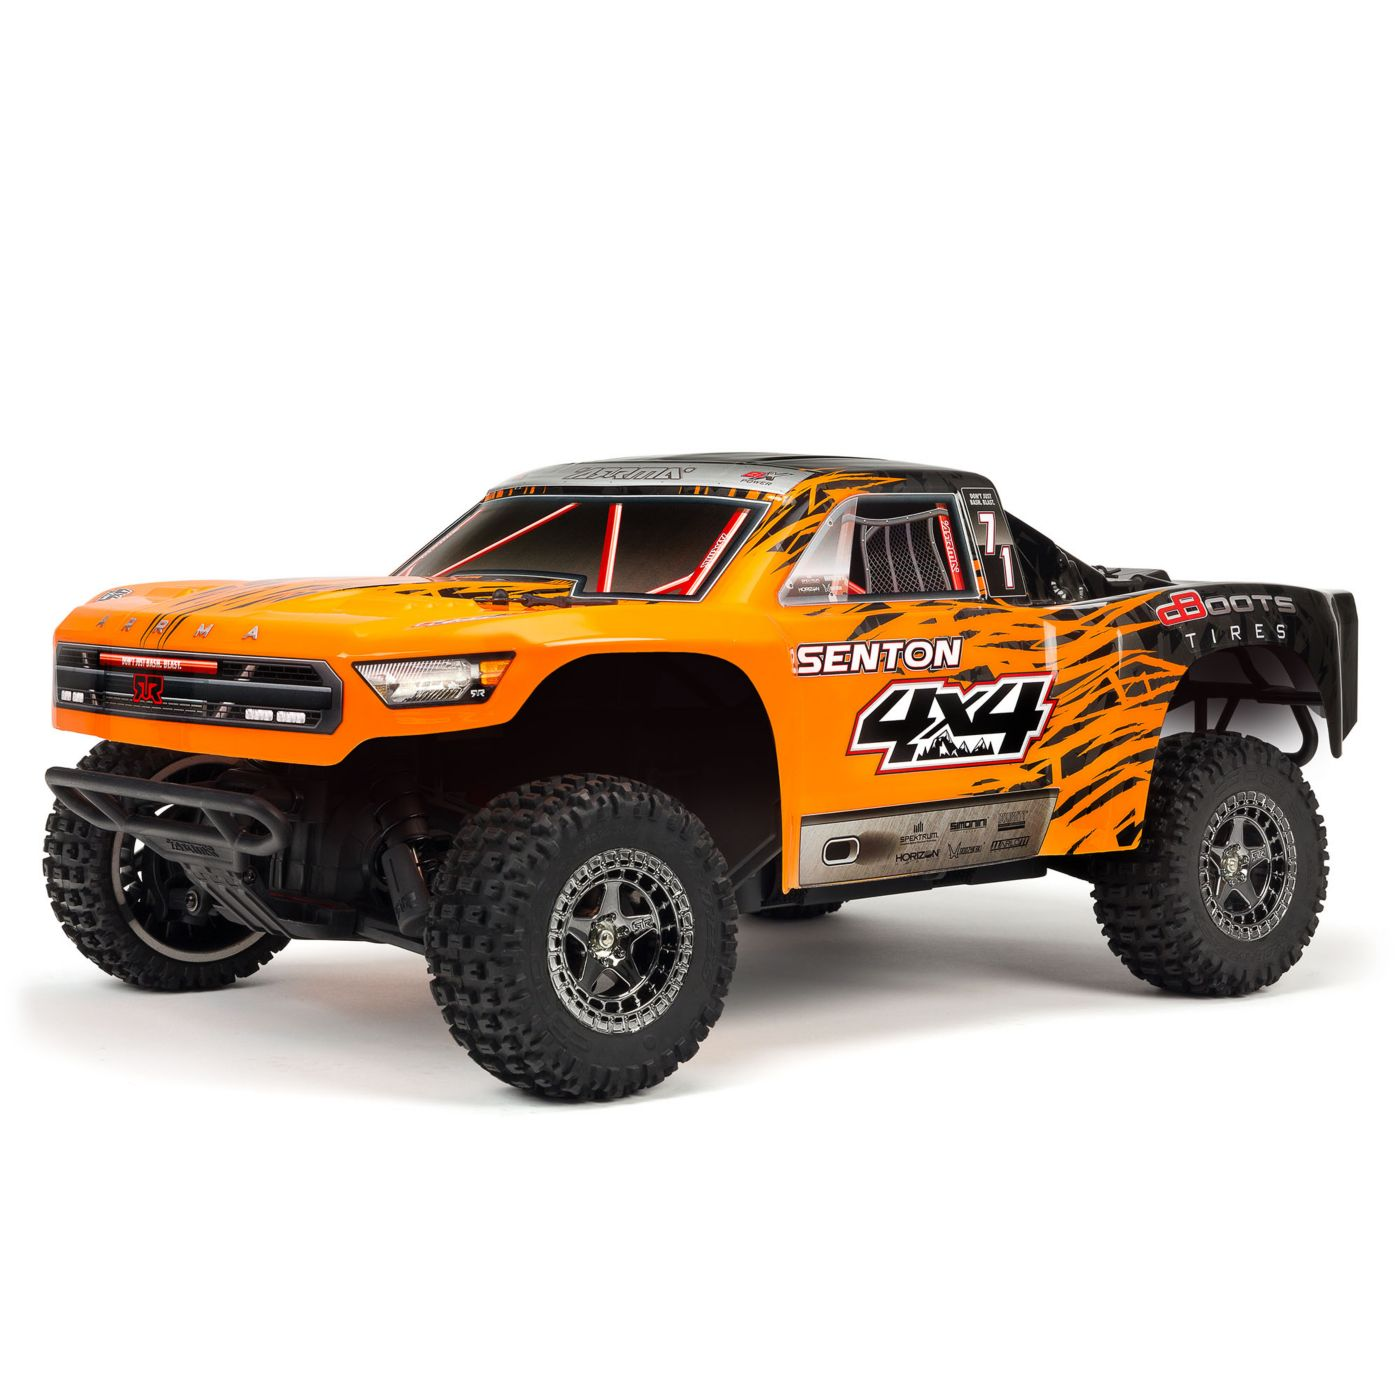 ARRMA 1/10 SENTON 3S BLX 4WD Brushless Short Course Truck with Spektrum RTR, Orange/Black